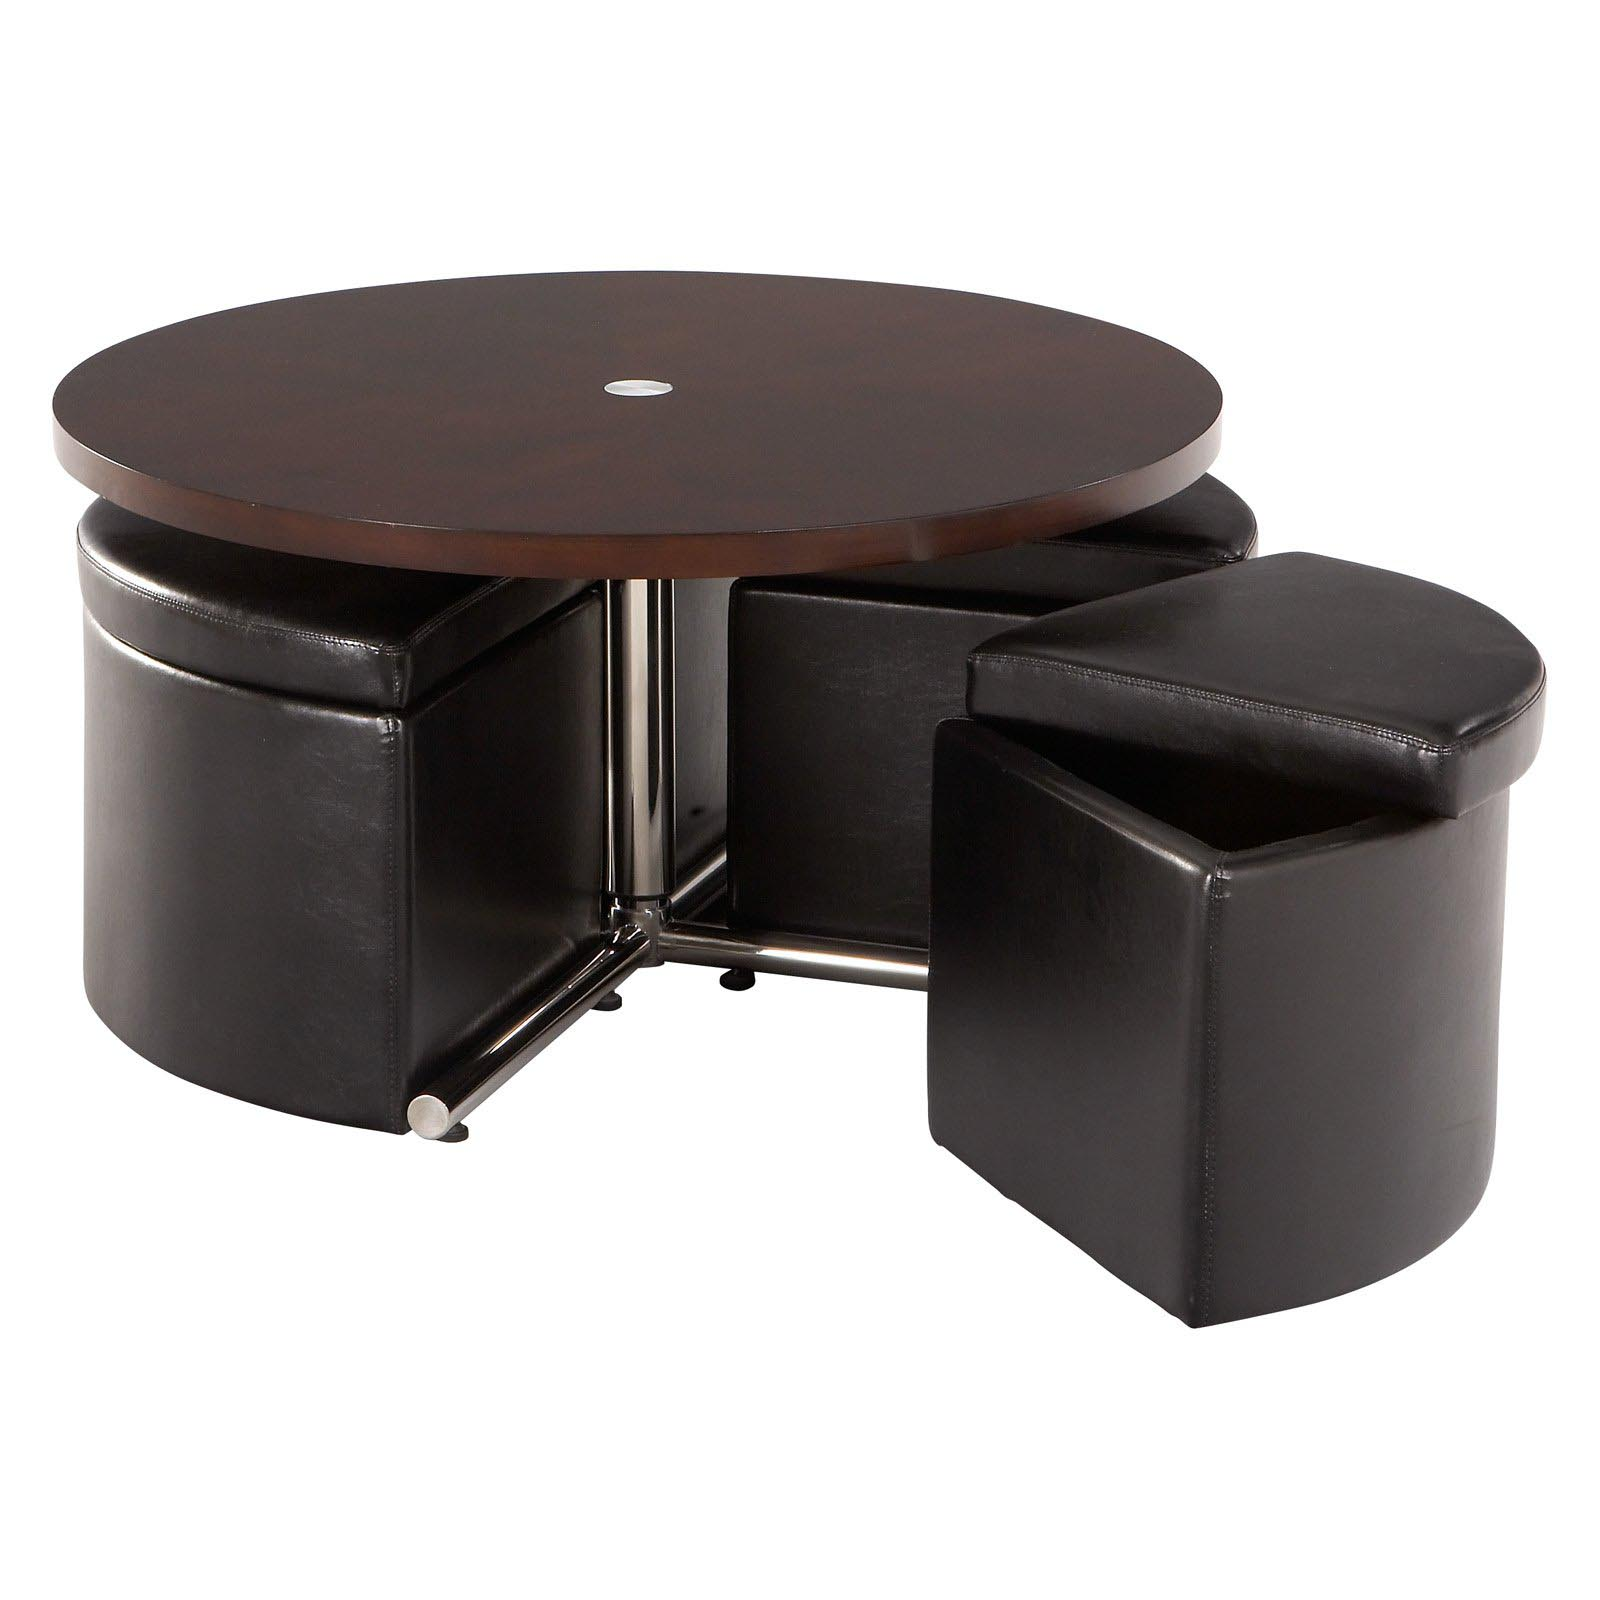 Round coffee table with seating coffee table design ideas What to put on a round coffee table